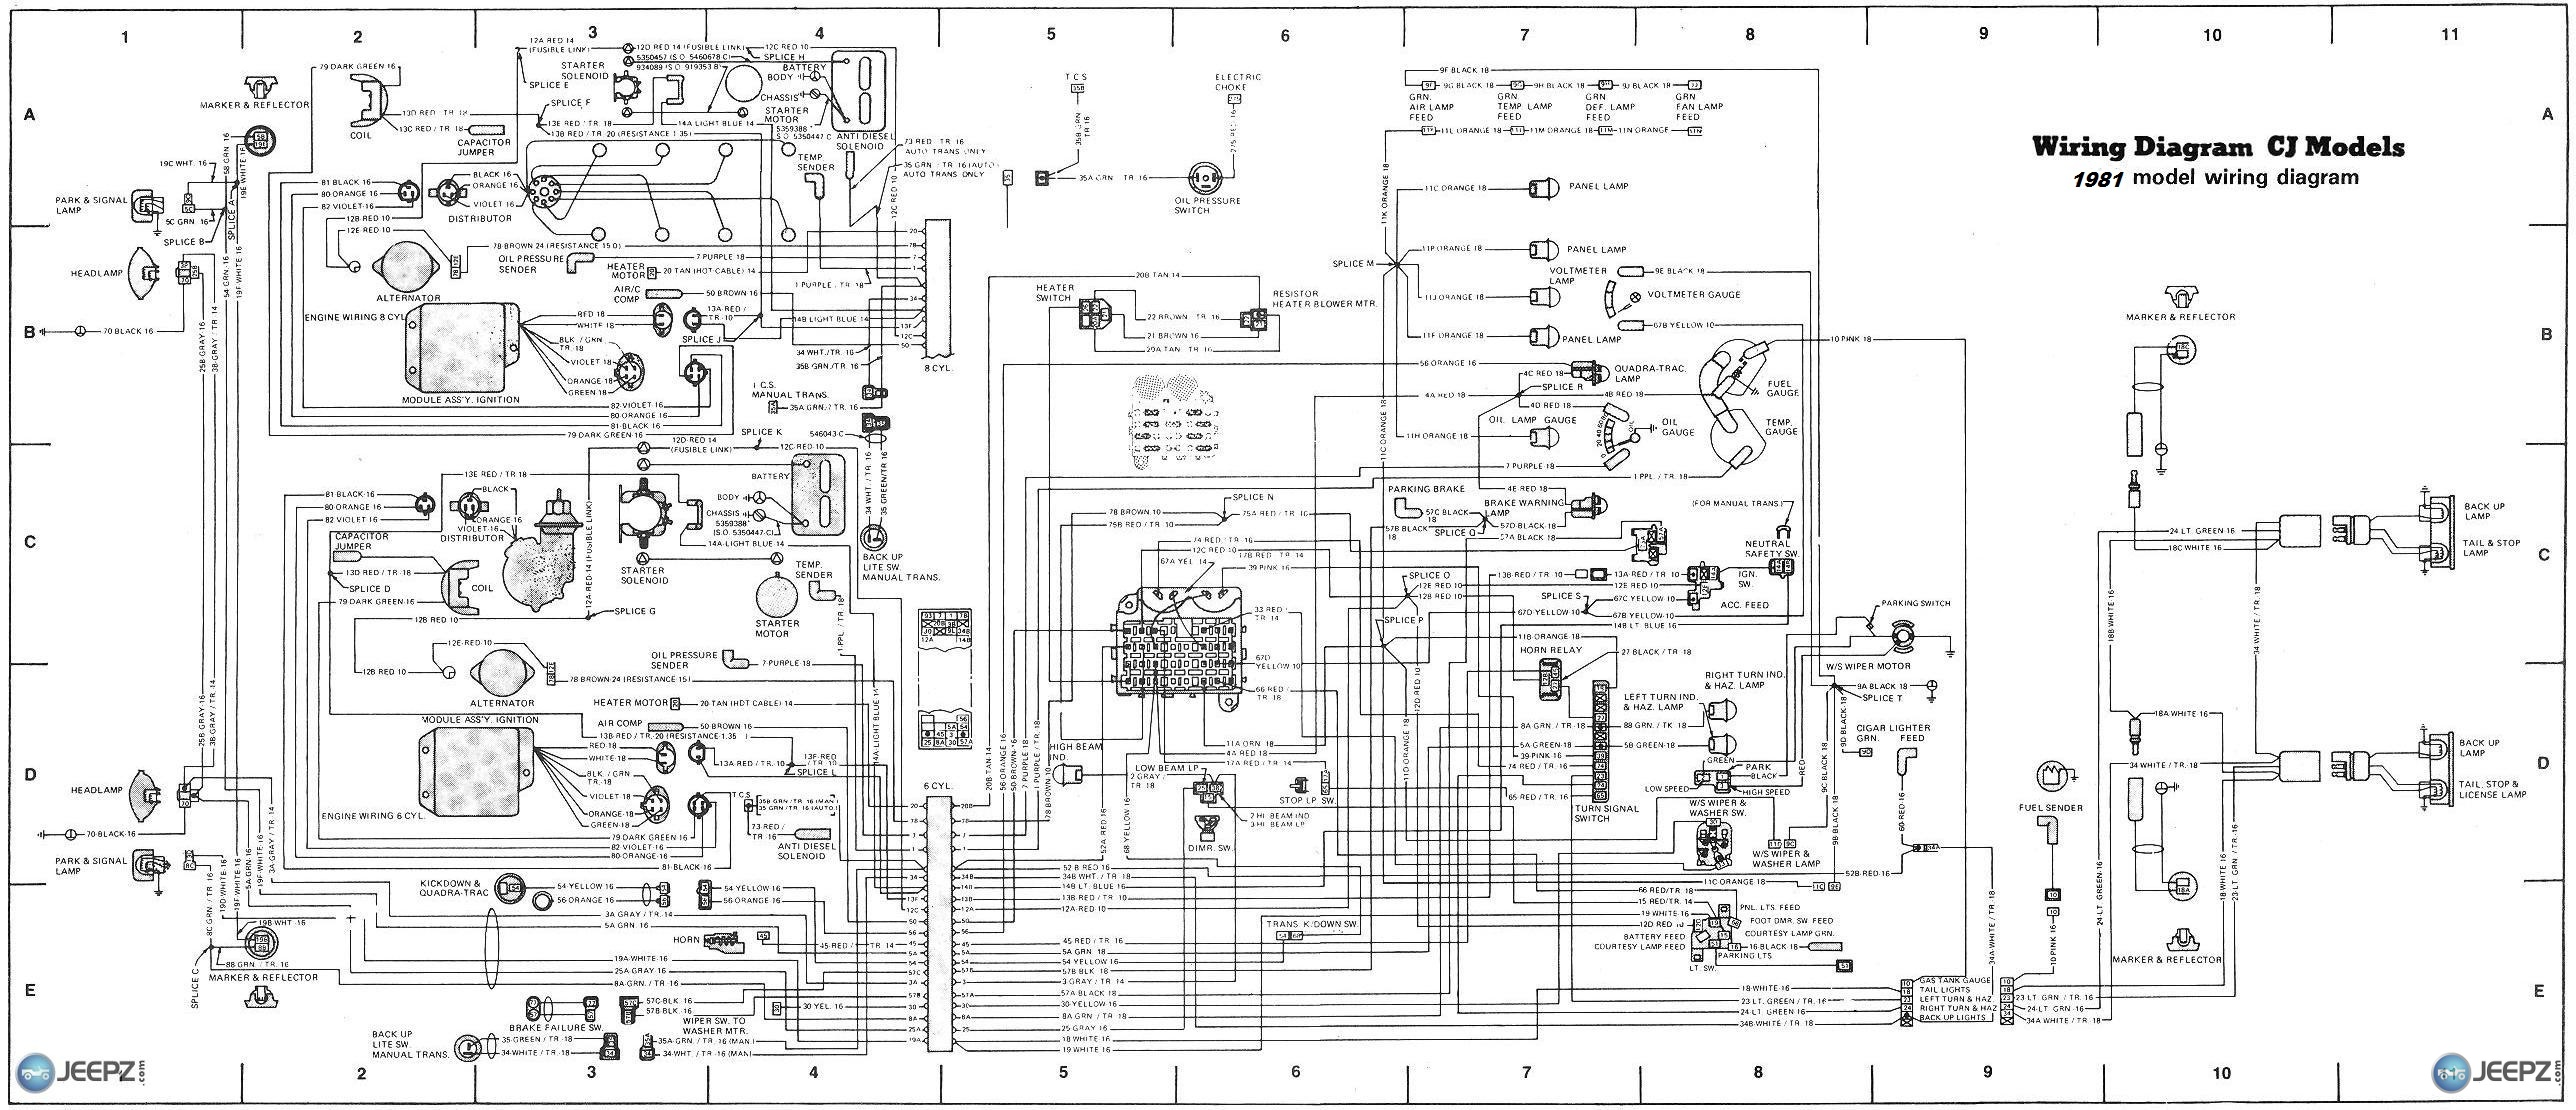 Wiring Diagram For 2009 Jeep Wrangler Simple Wiring Diagram Jeep Wrangler  Fenders 2001 Jeep Wrangler Signal Wiring